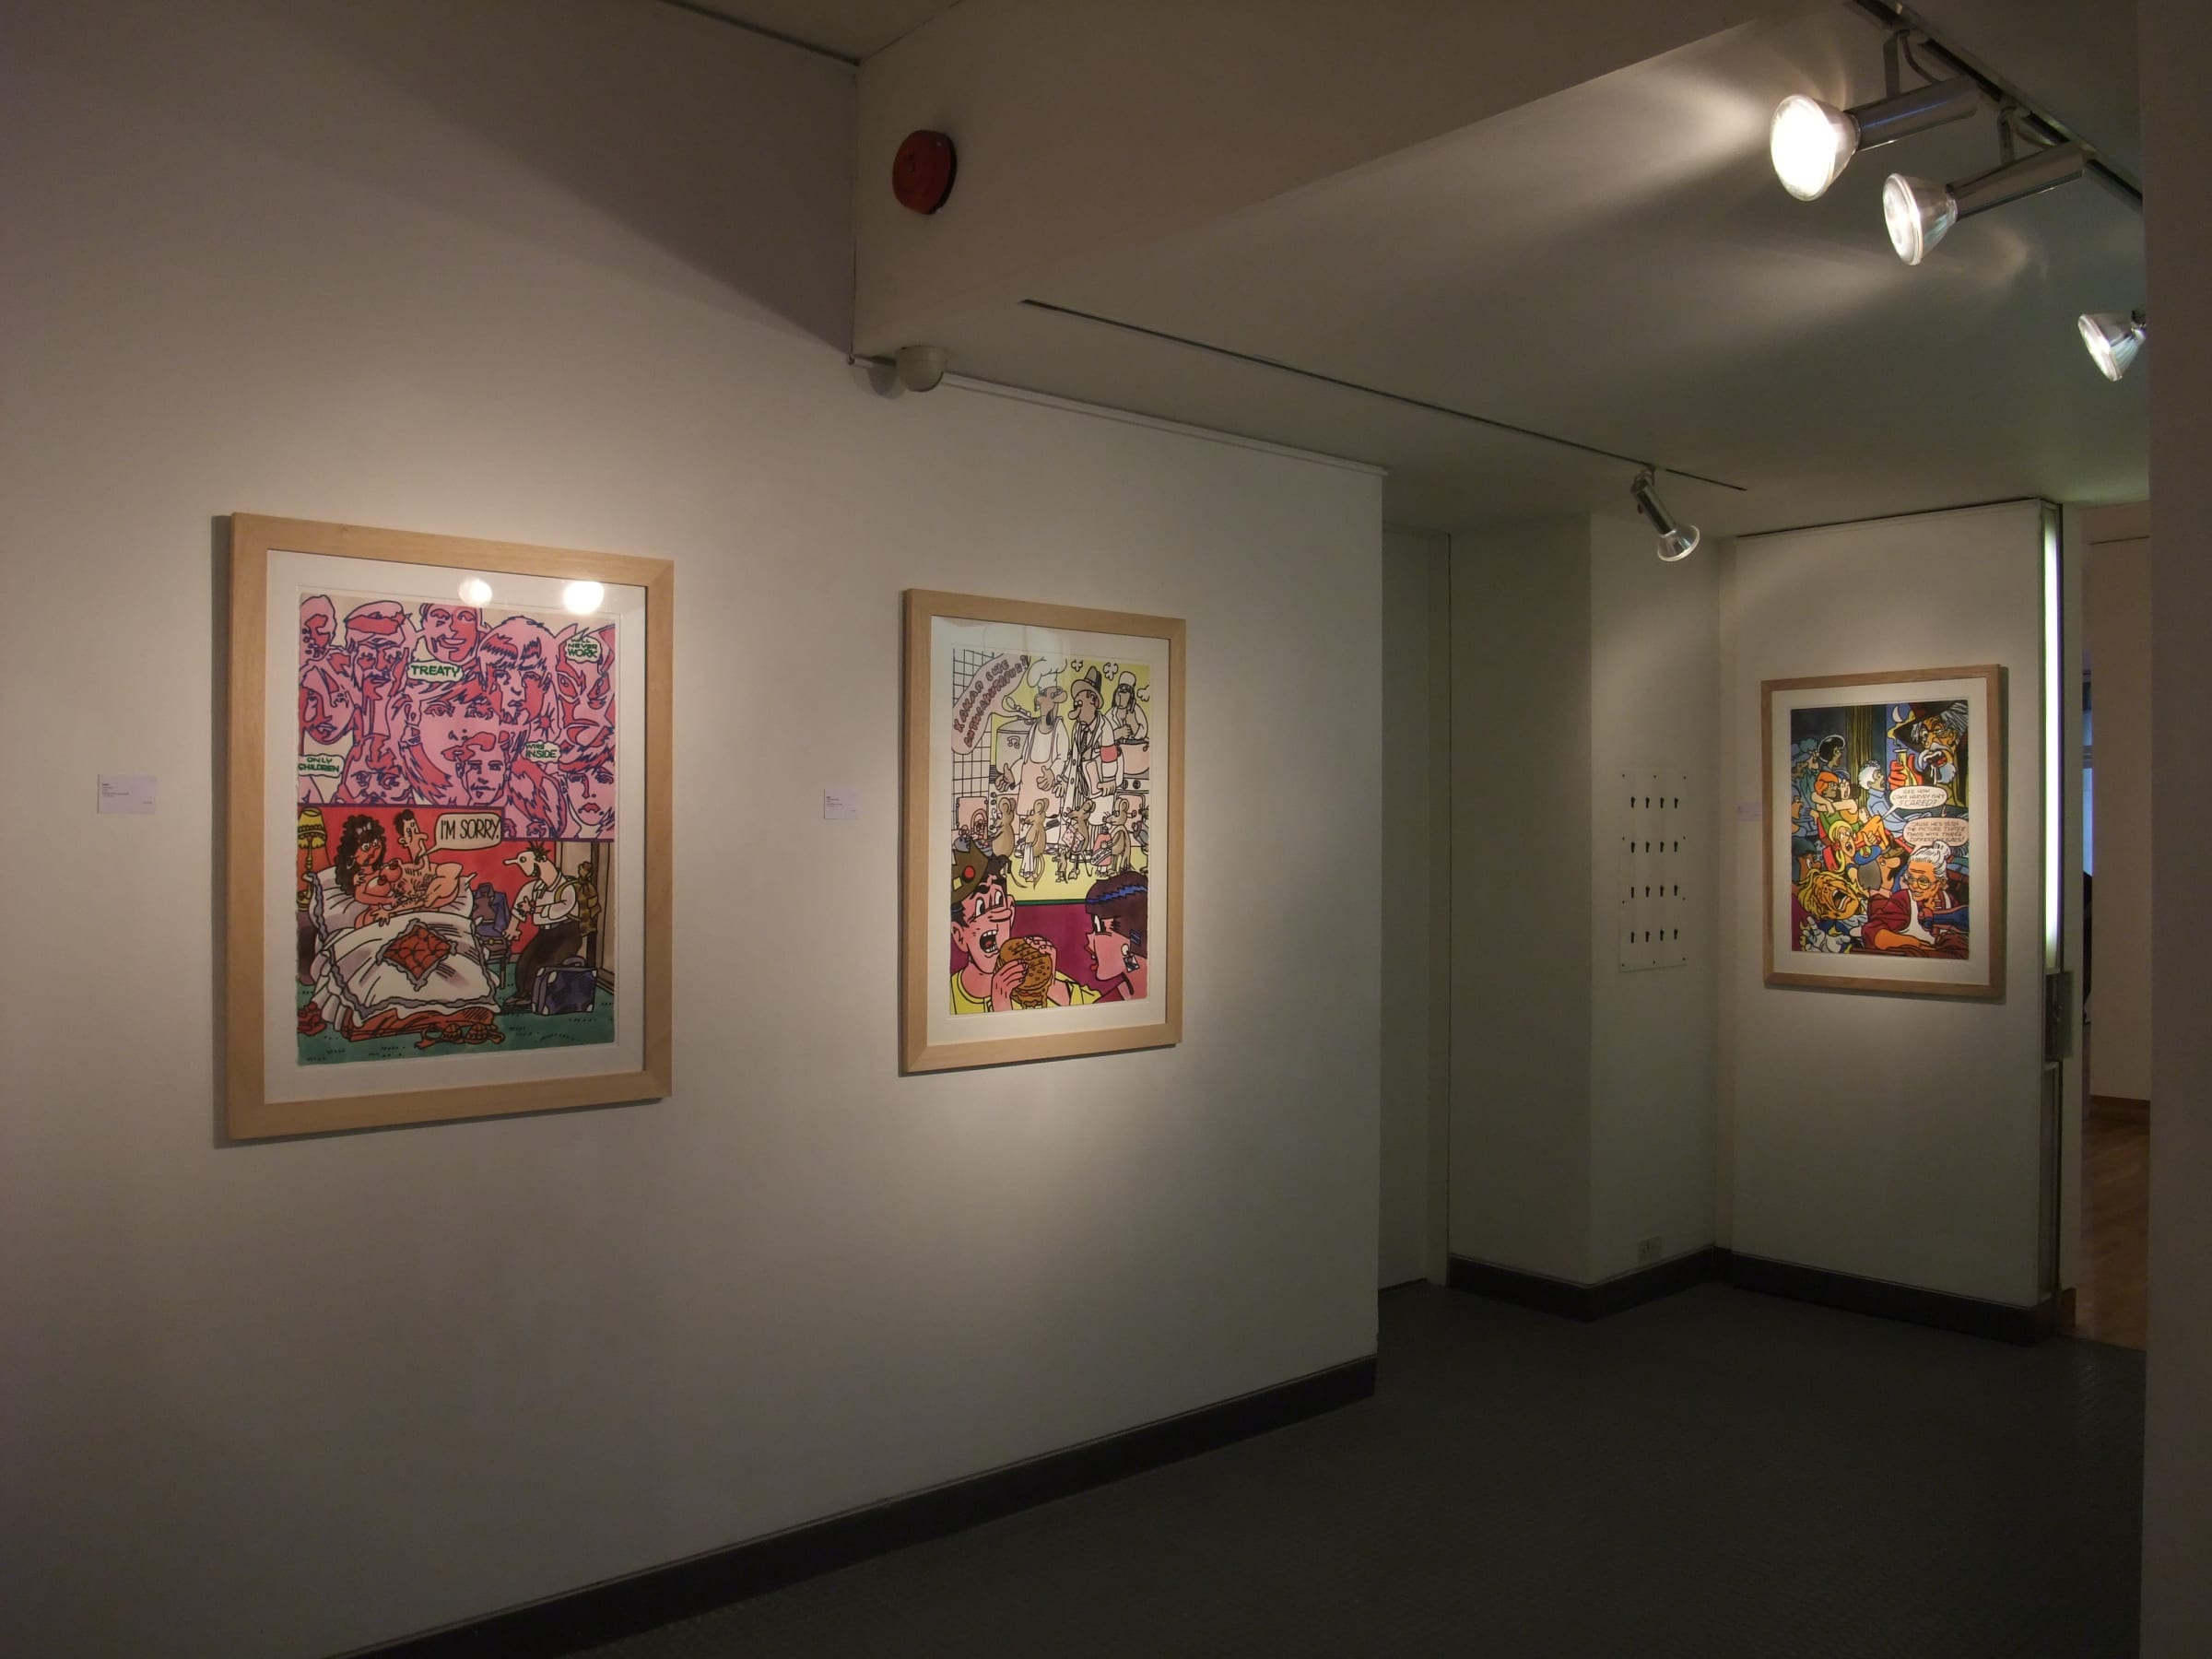 "<span class=""link fancybox-details-link""><a href=""/exhibitions/96/works/image_standalone329/"">View Detail Page</a></span><p>ERRÓ 